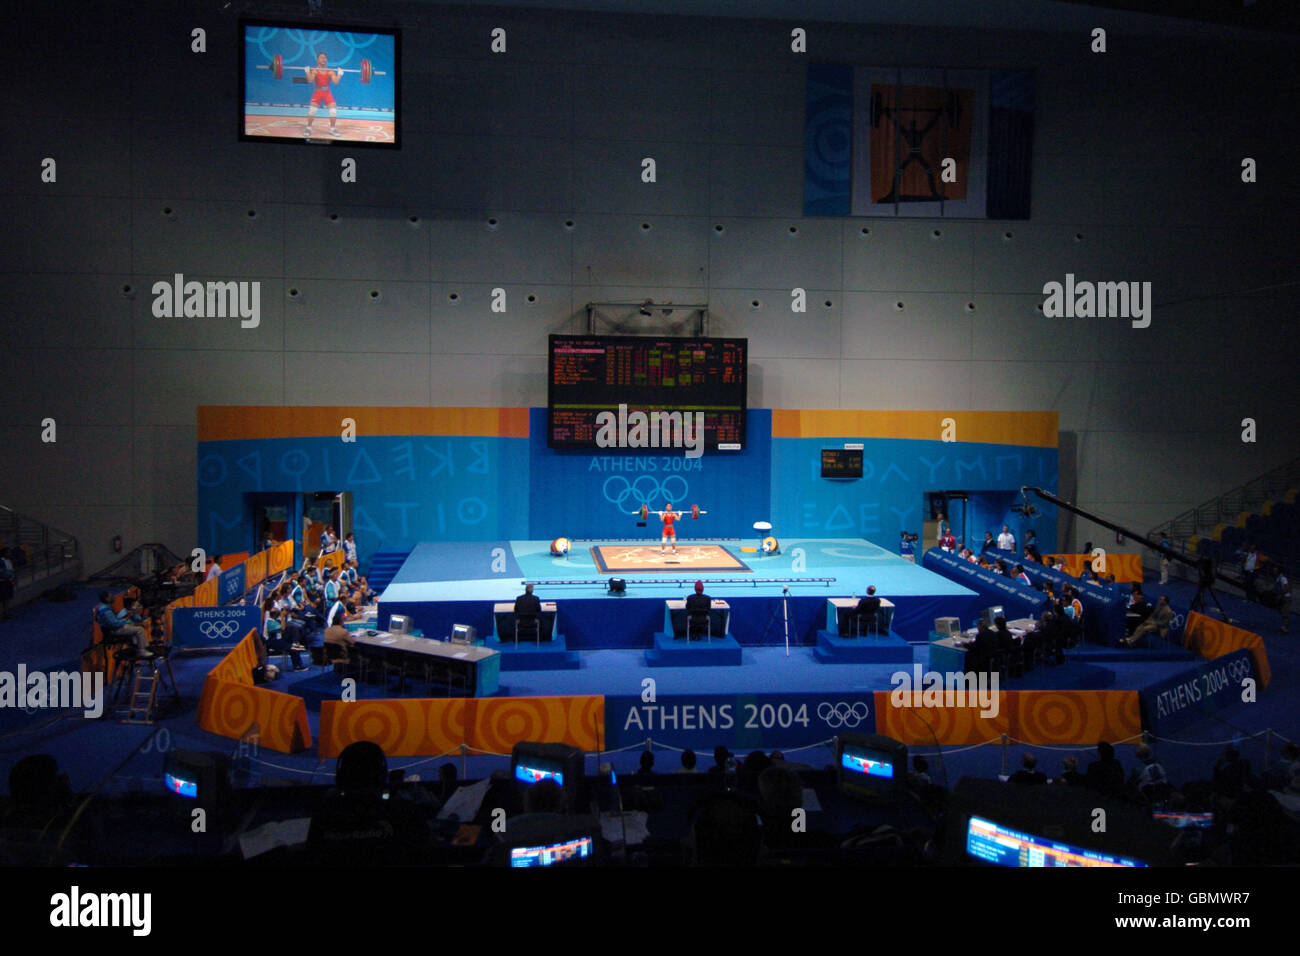 A general view of the Nikaia Olympic Weightlifting hall Stock Photo - Alamy